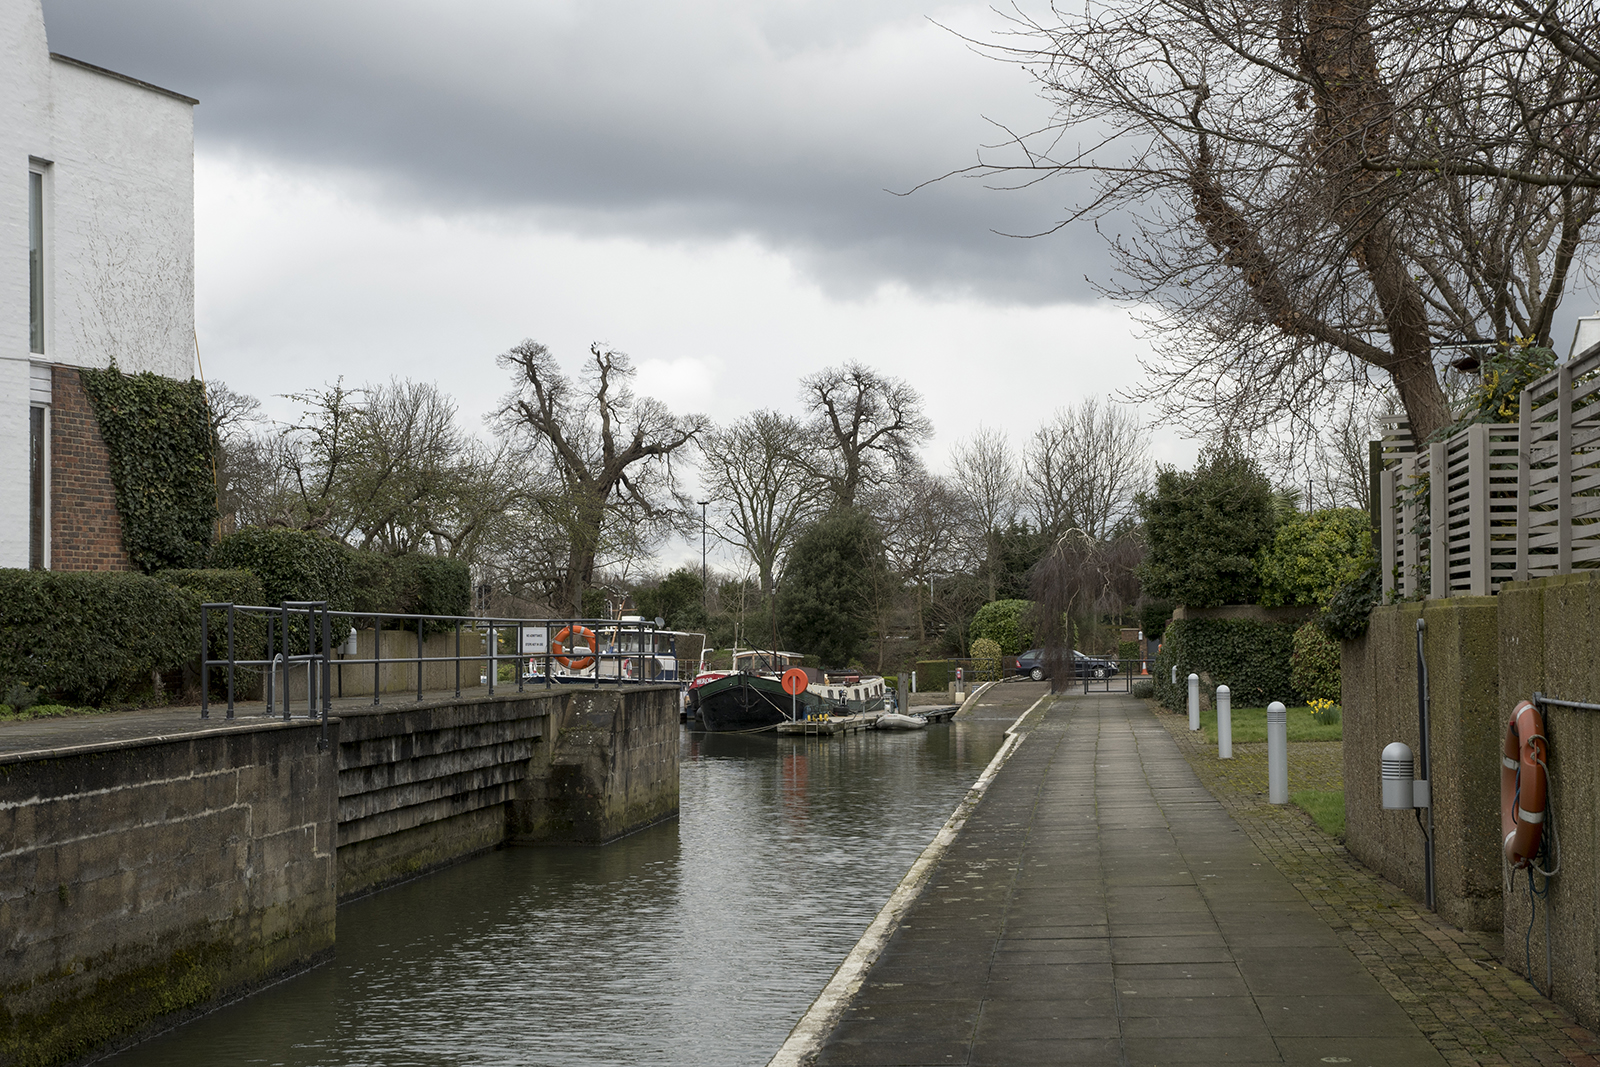 20170308_Hammersmith-and-Fulham_Thames-Path_Landscape_Winter_Lock-into-Chiswick-Quay